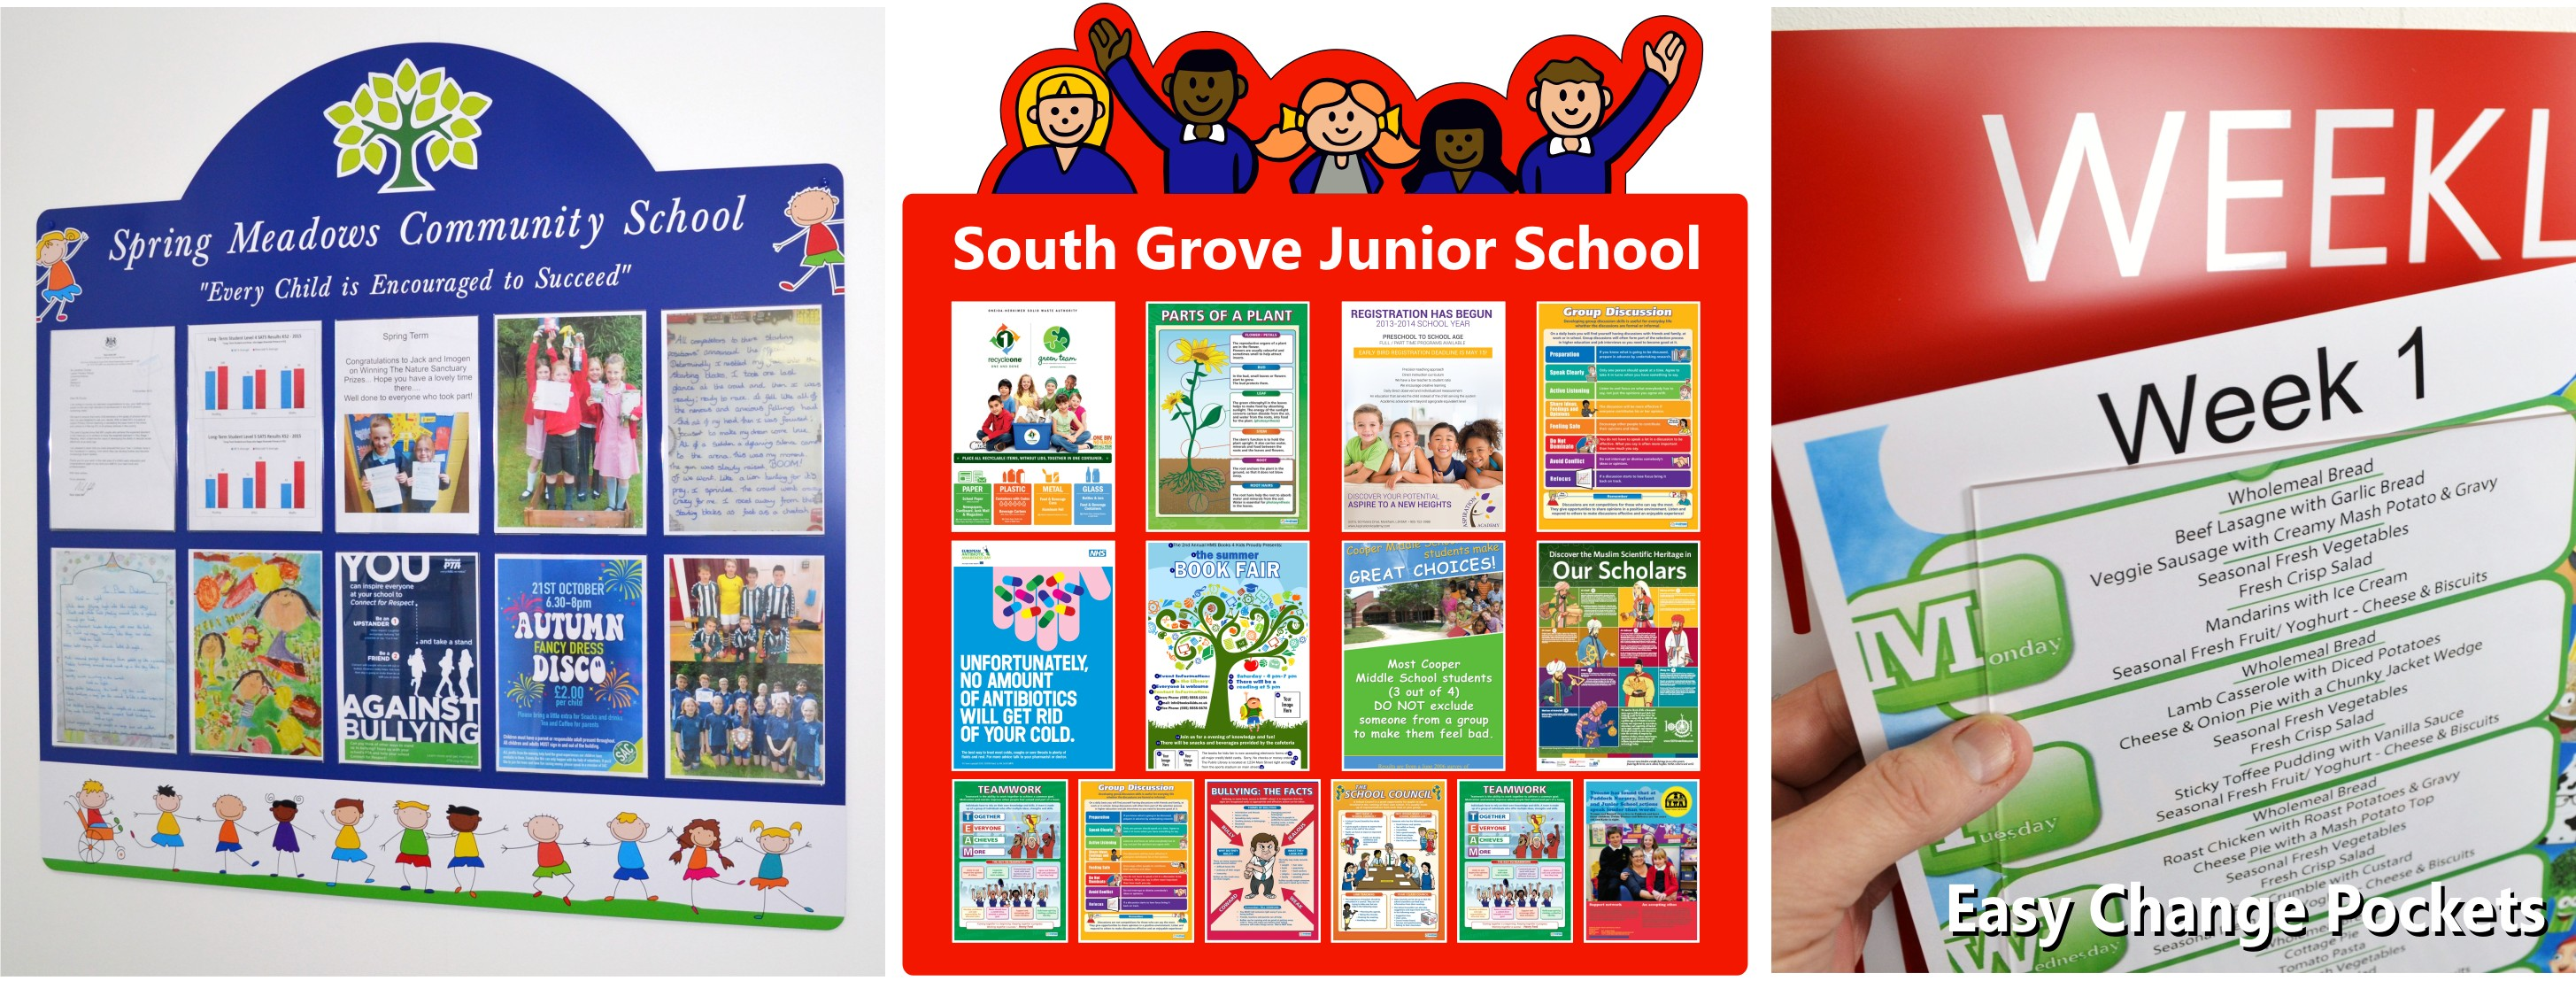 The School Wall Presentation and Display Panel